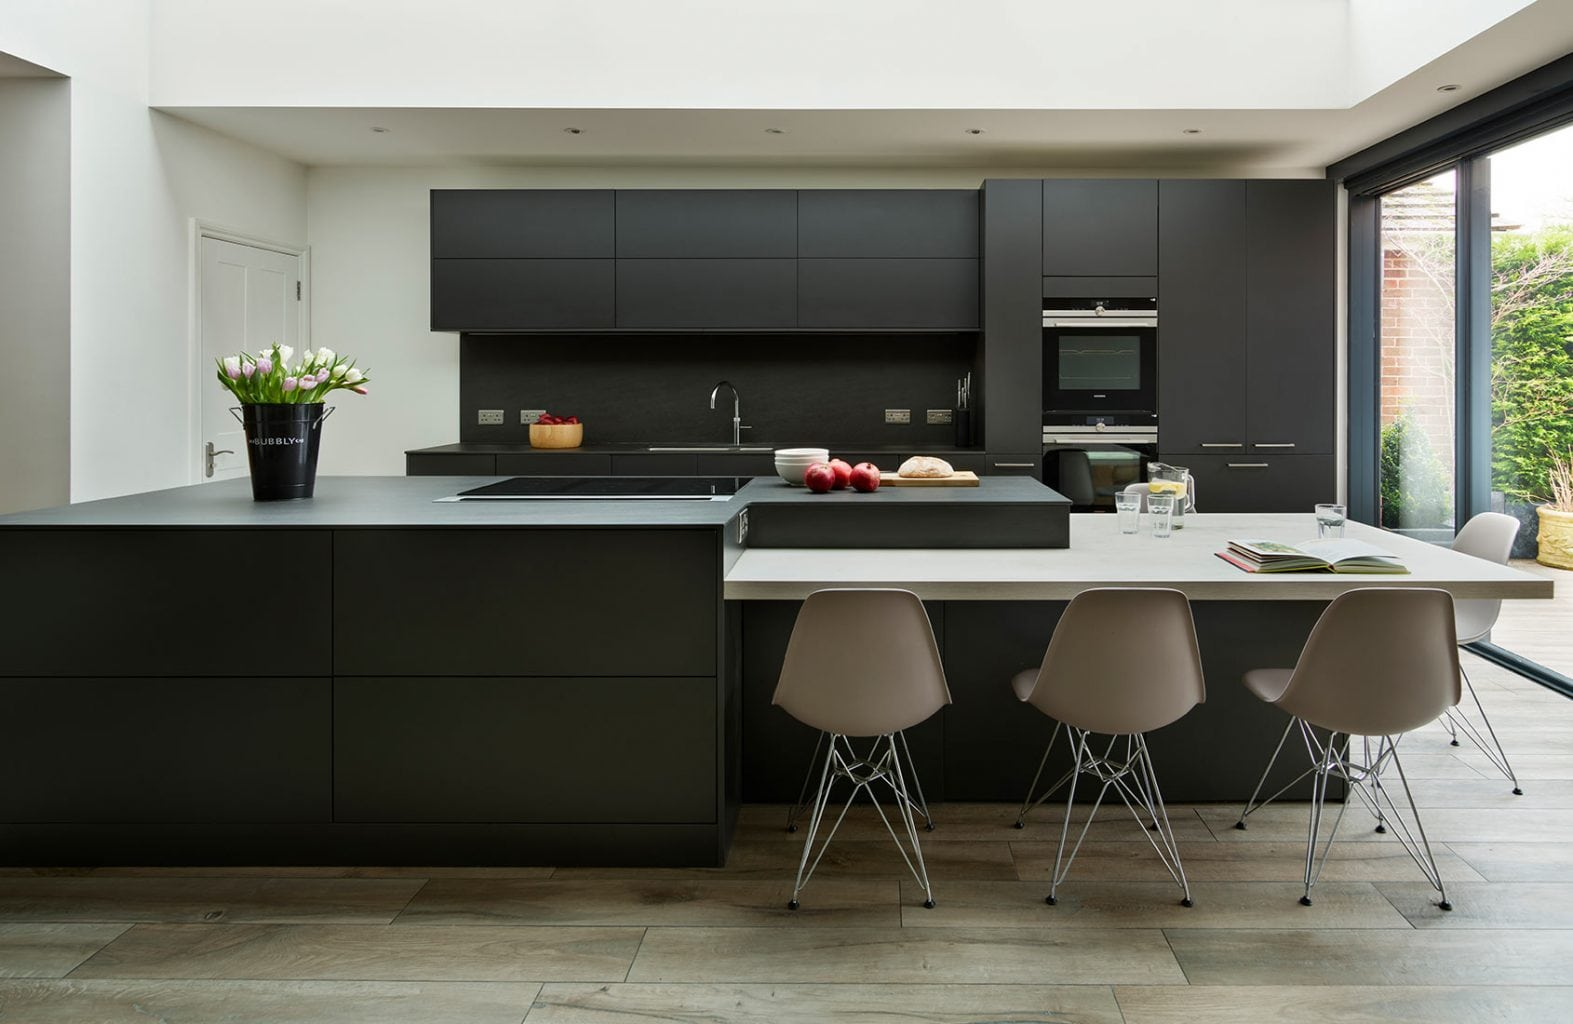 snug-kitchens-website-design-based-in-newbury-berkshire